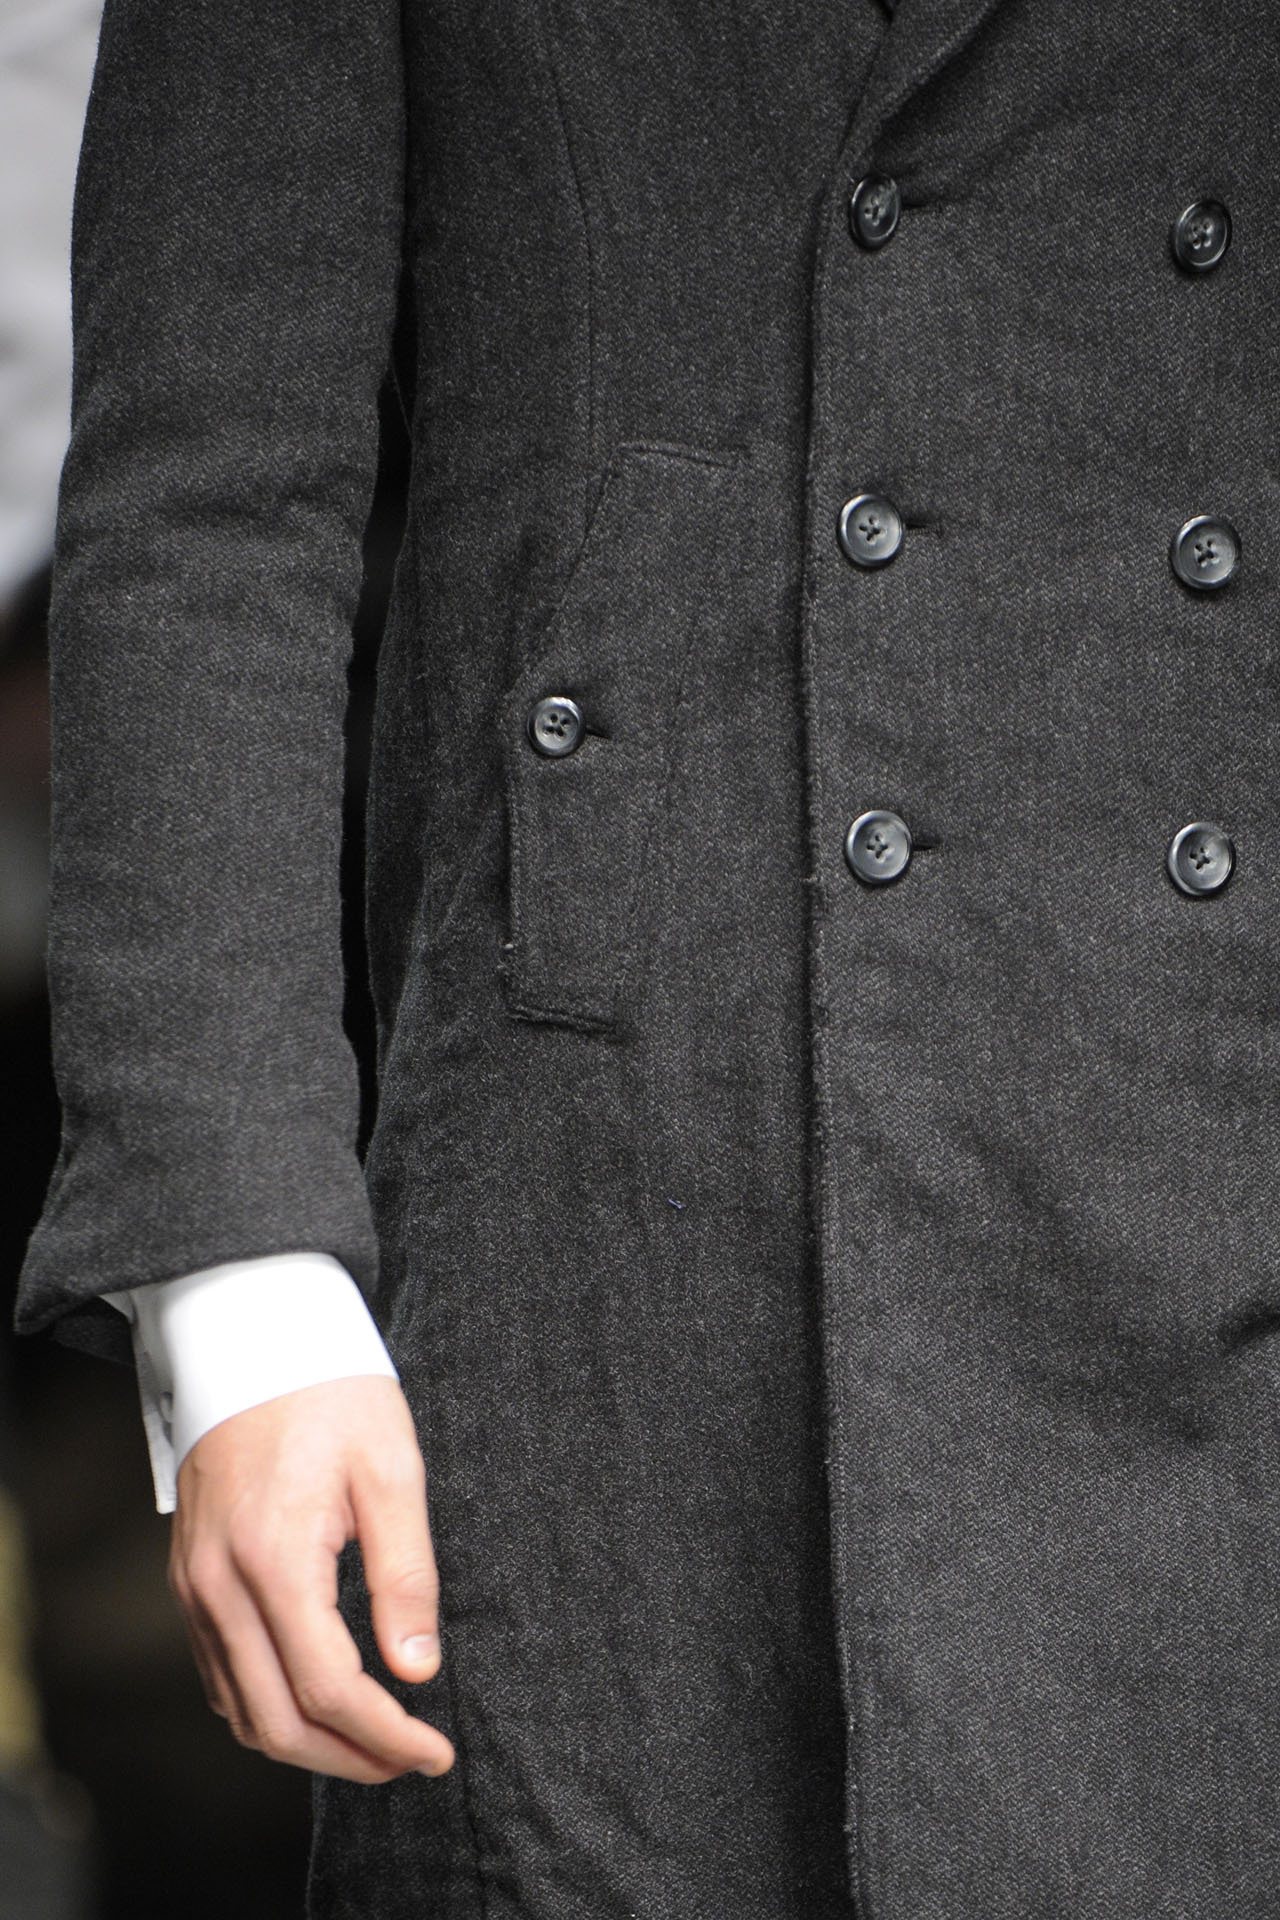 Dolce & Gabbana Fall/Winter 2012 Menswear